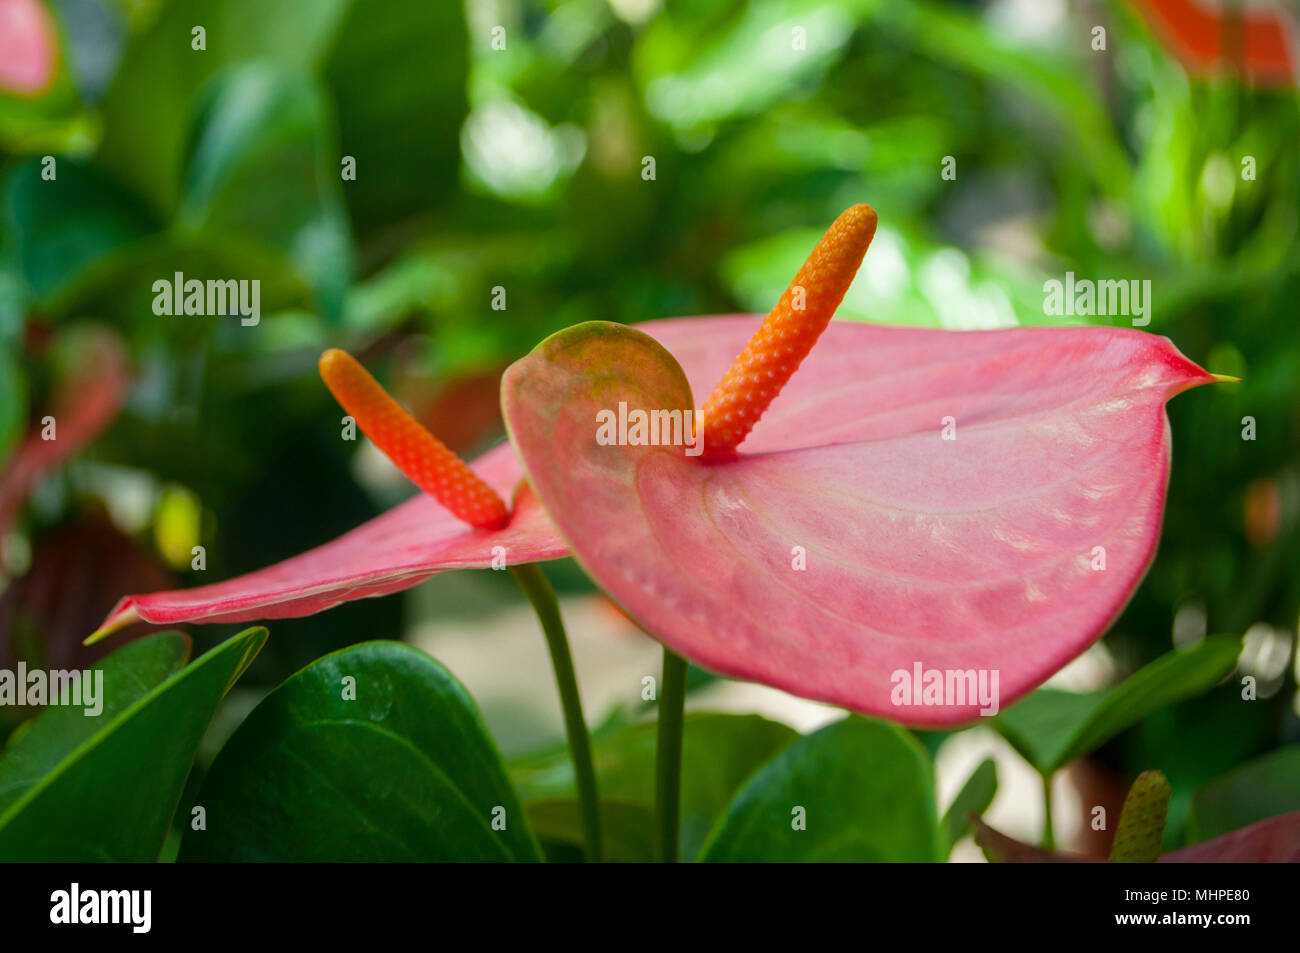 Beautiful Pink Color Anthurium Flowers In A Garden Stock Photo